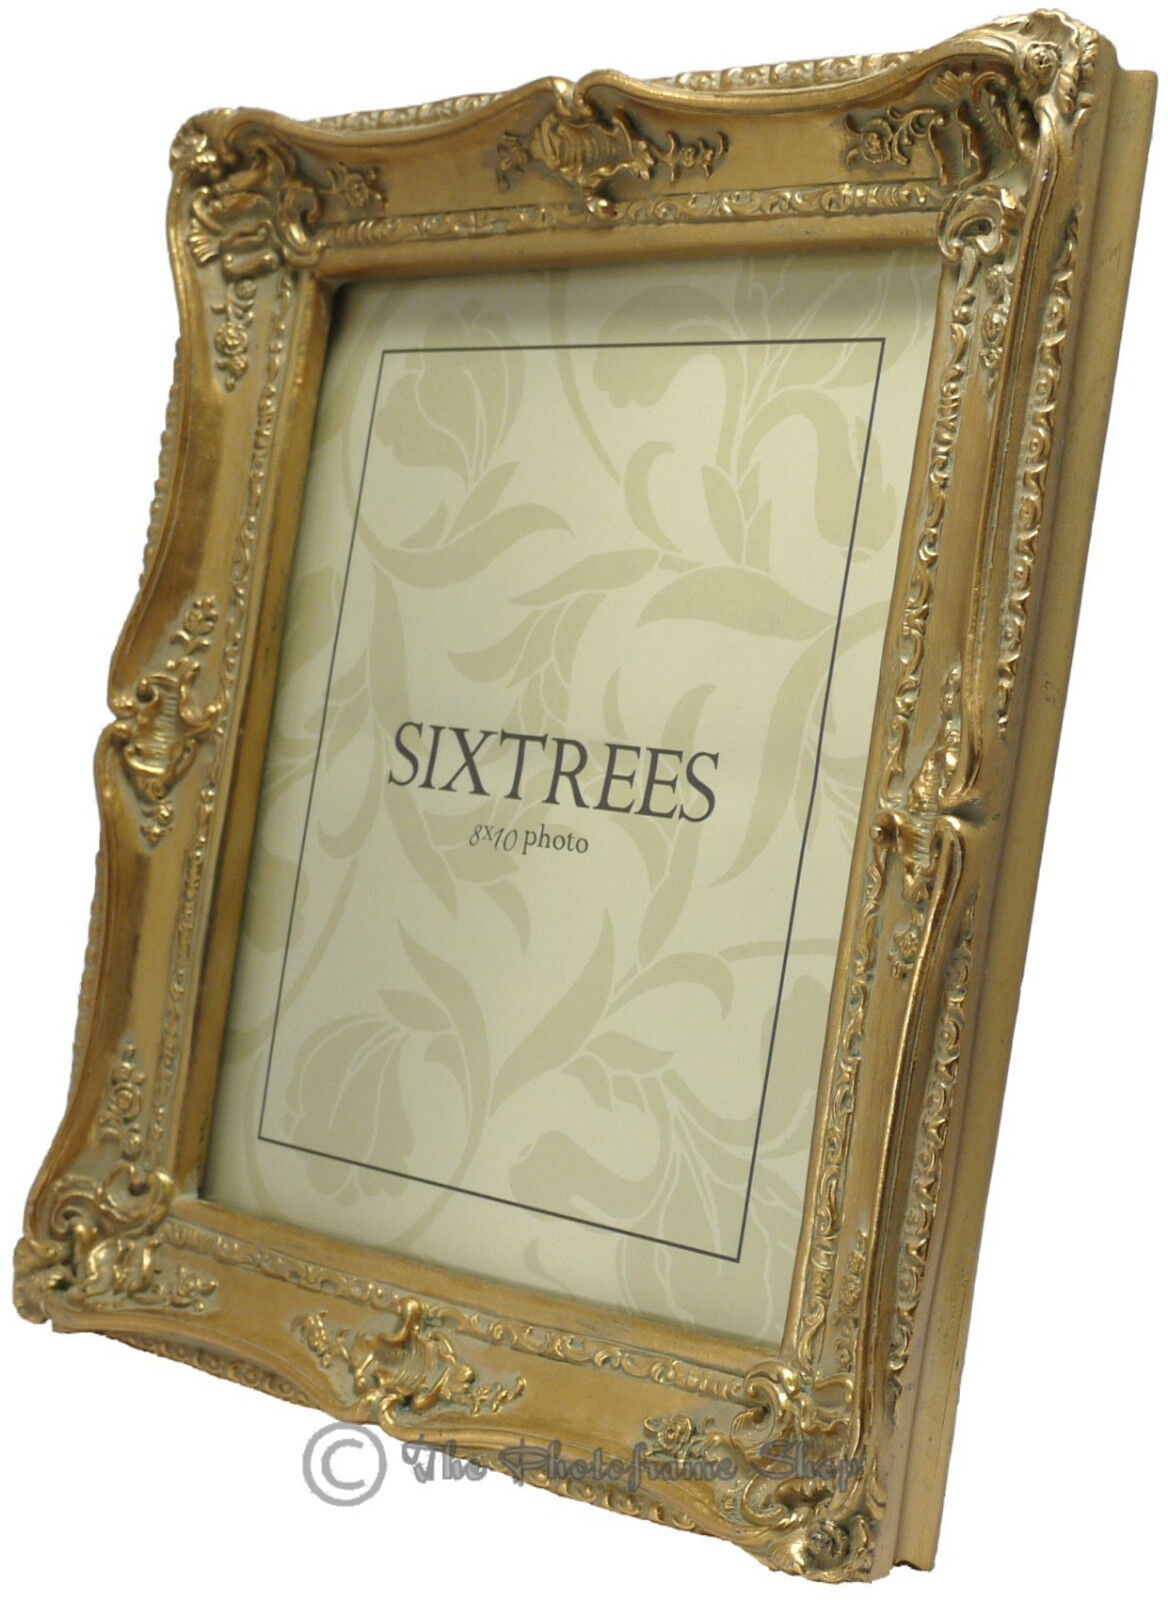 ornate swept shabby chic vintage antique style photo frames 4x4 6x4 7x5 8x6 10x8 ebay. Black Bedroom Furniture Sets. Home Design Ideas